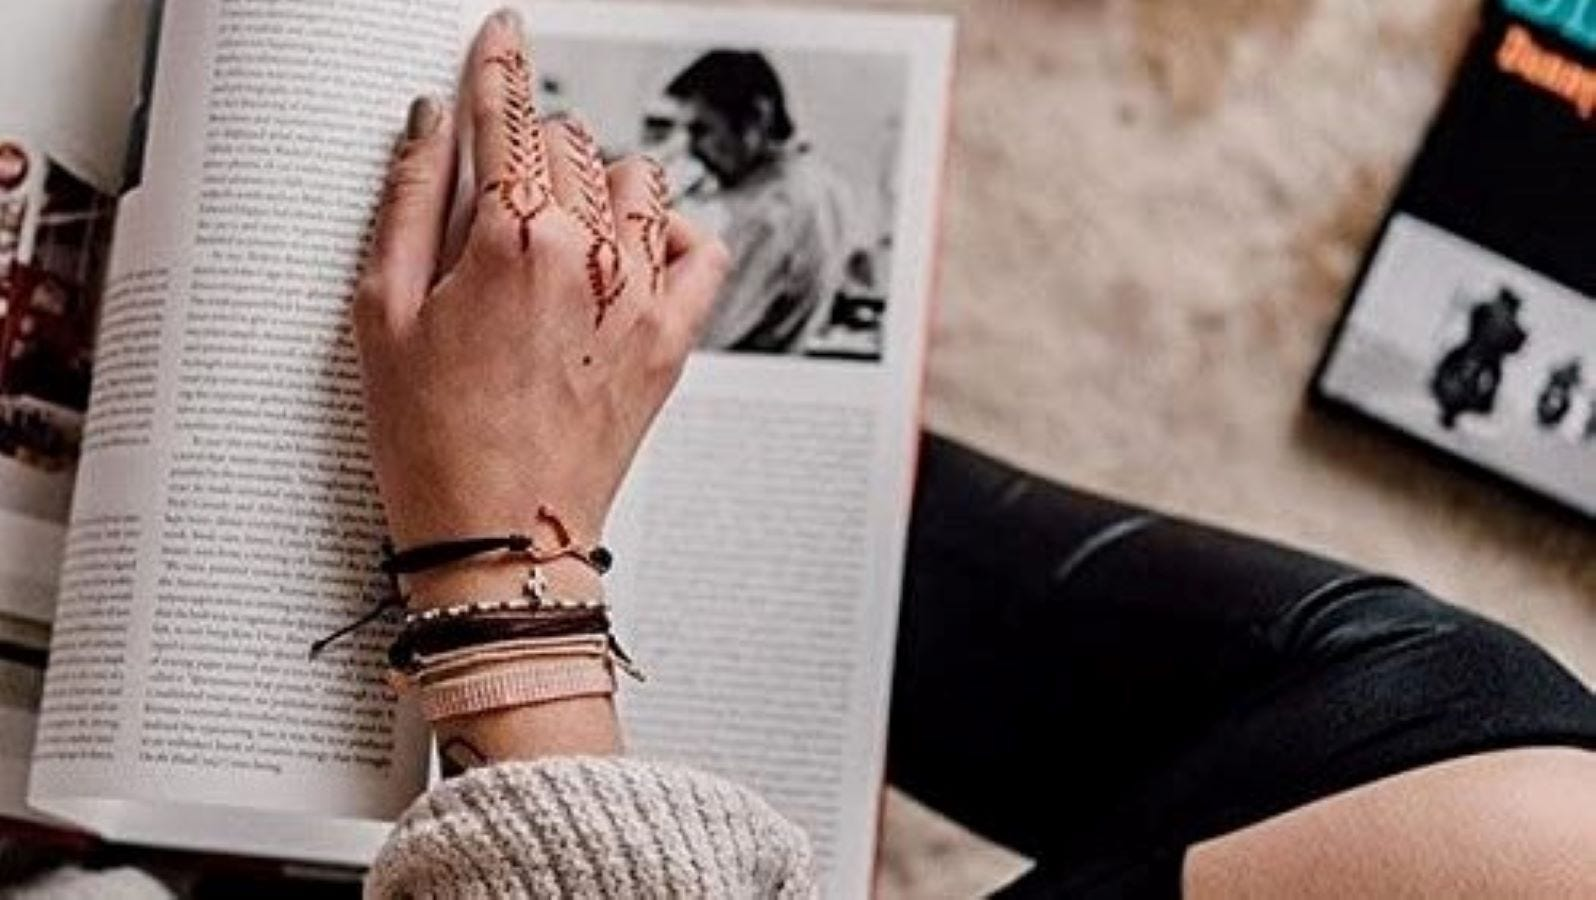 A woman reading a book and wearing a Puira Vida bracelet.